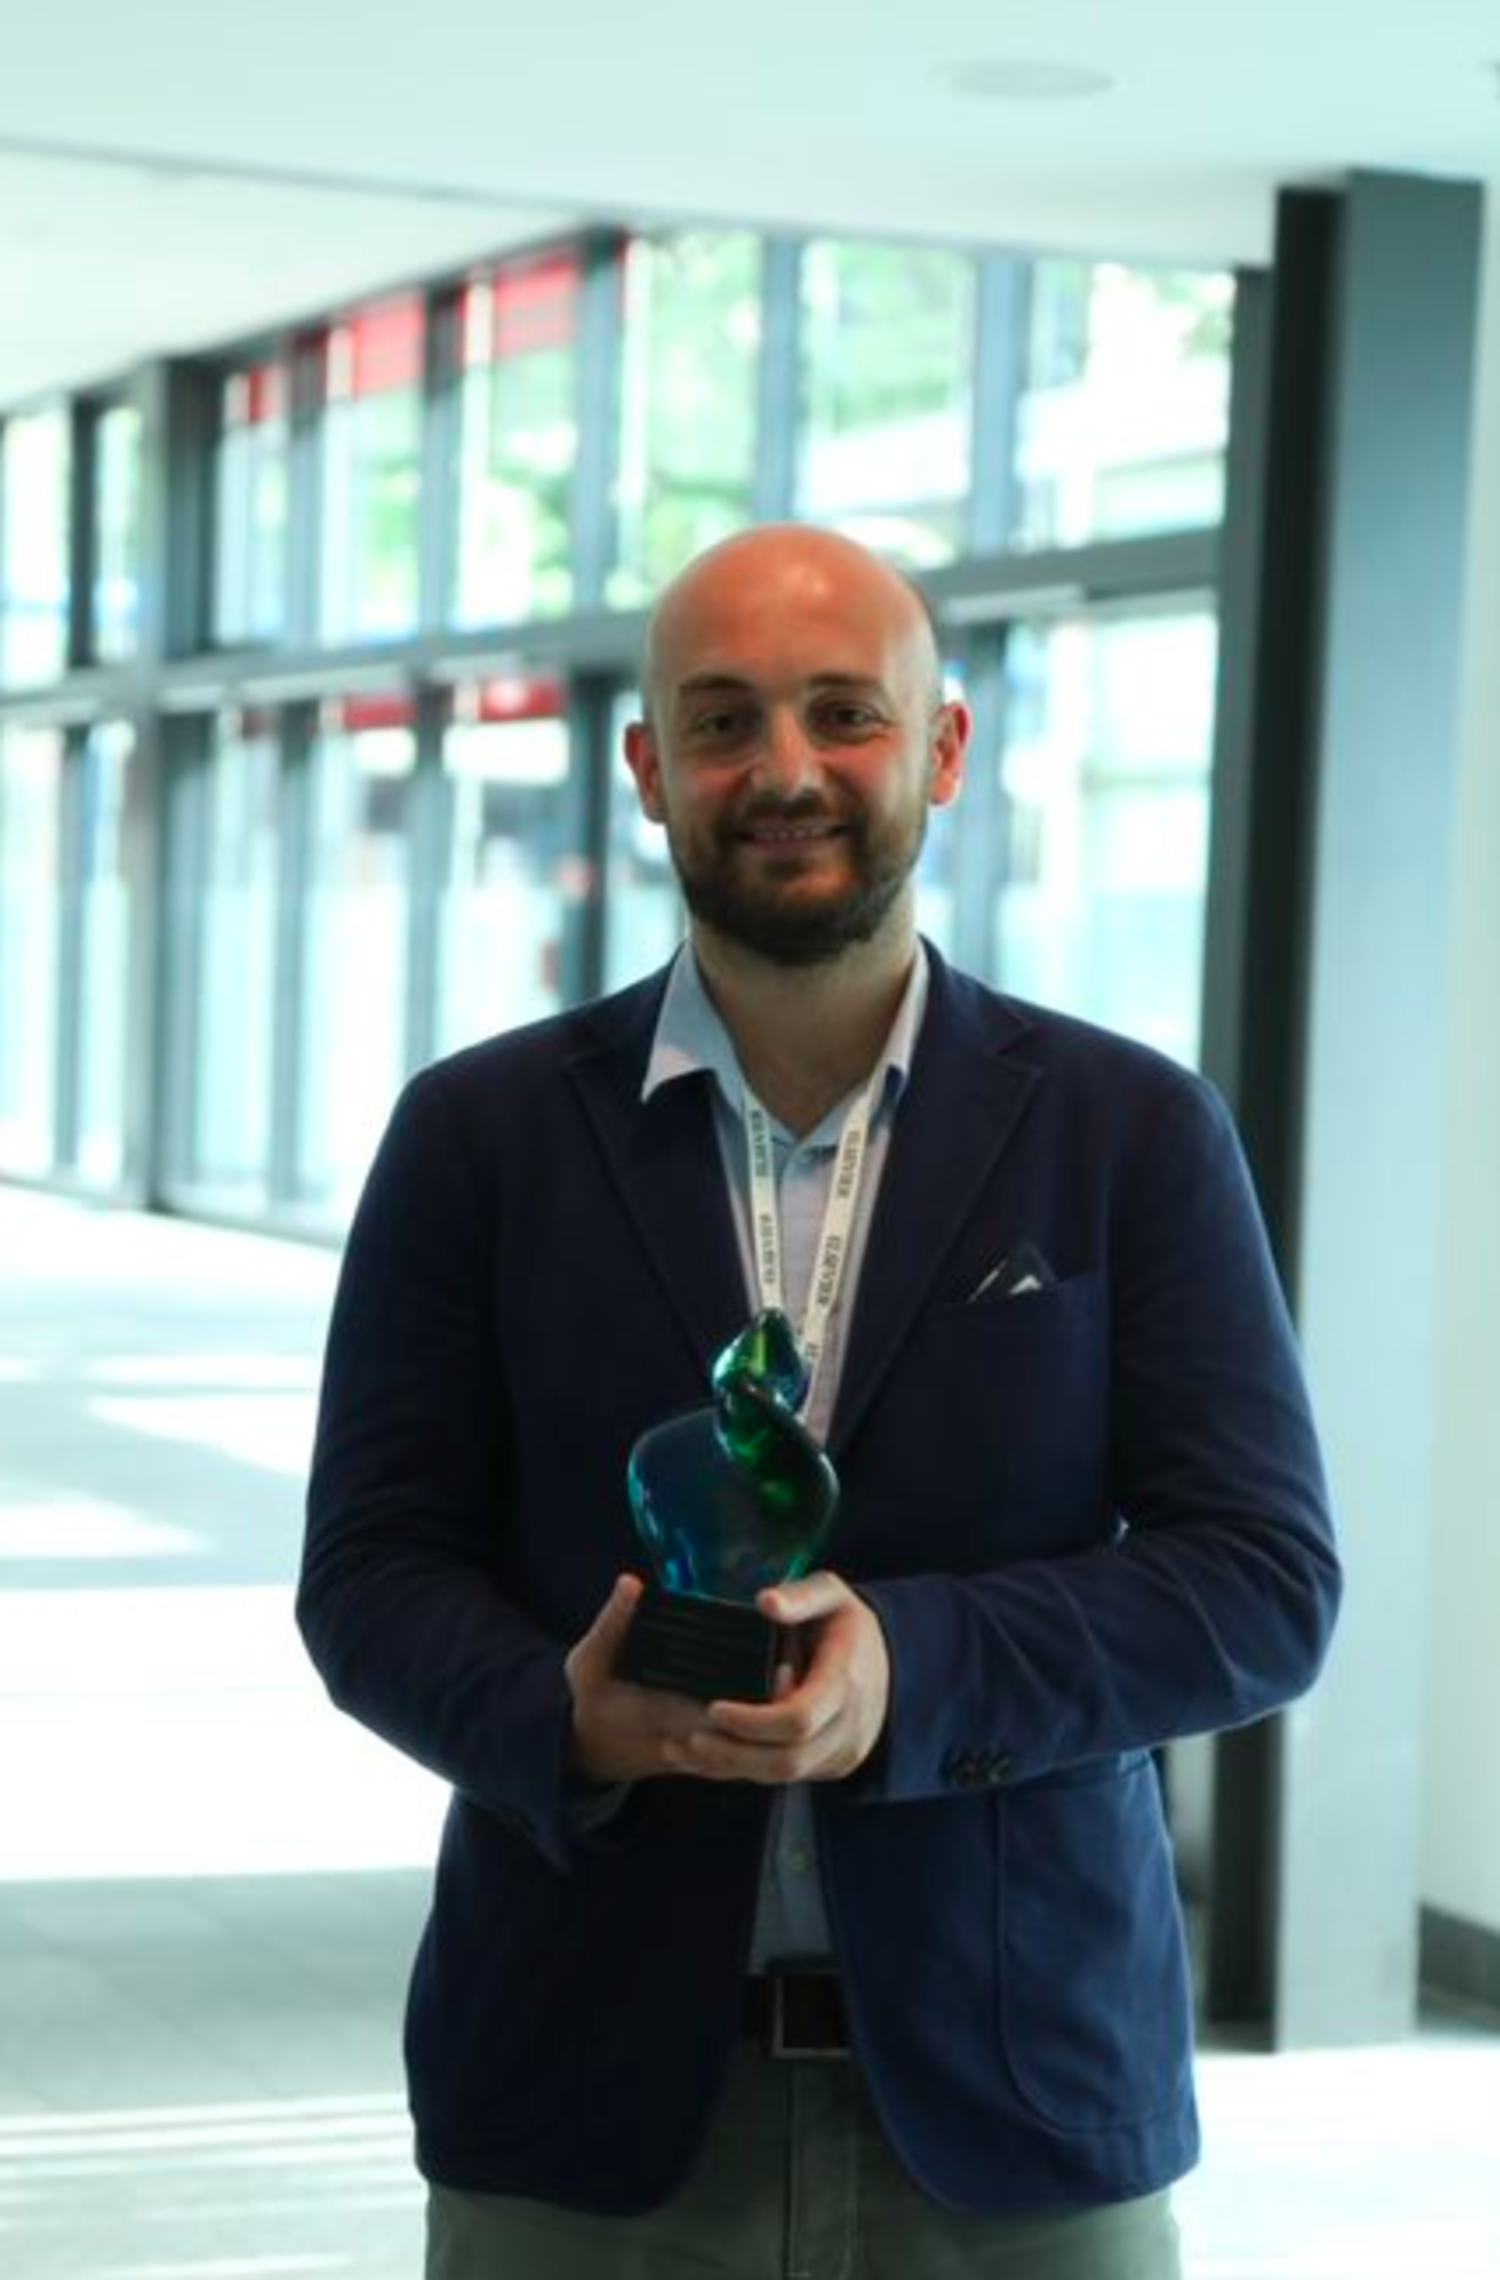 2018 Elsevier Foundation Green and Sustainable Chemistry Challenge second prize winner, Dr. Alessio Admiano